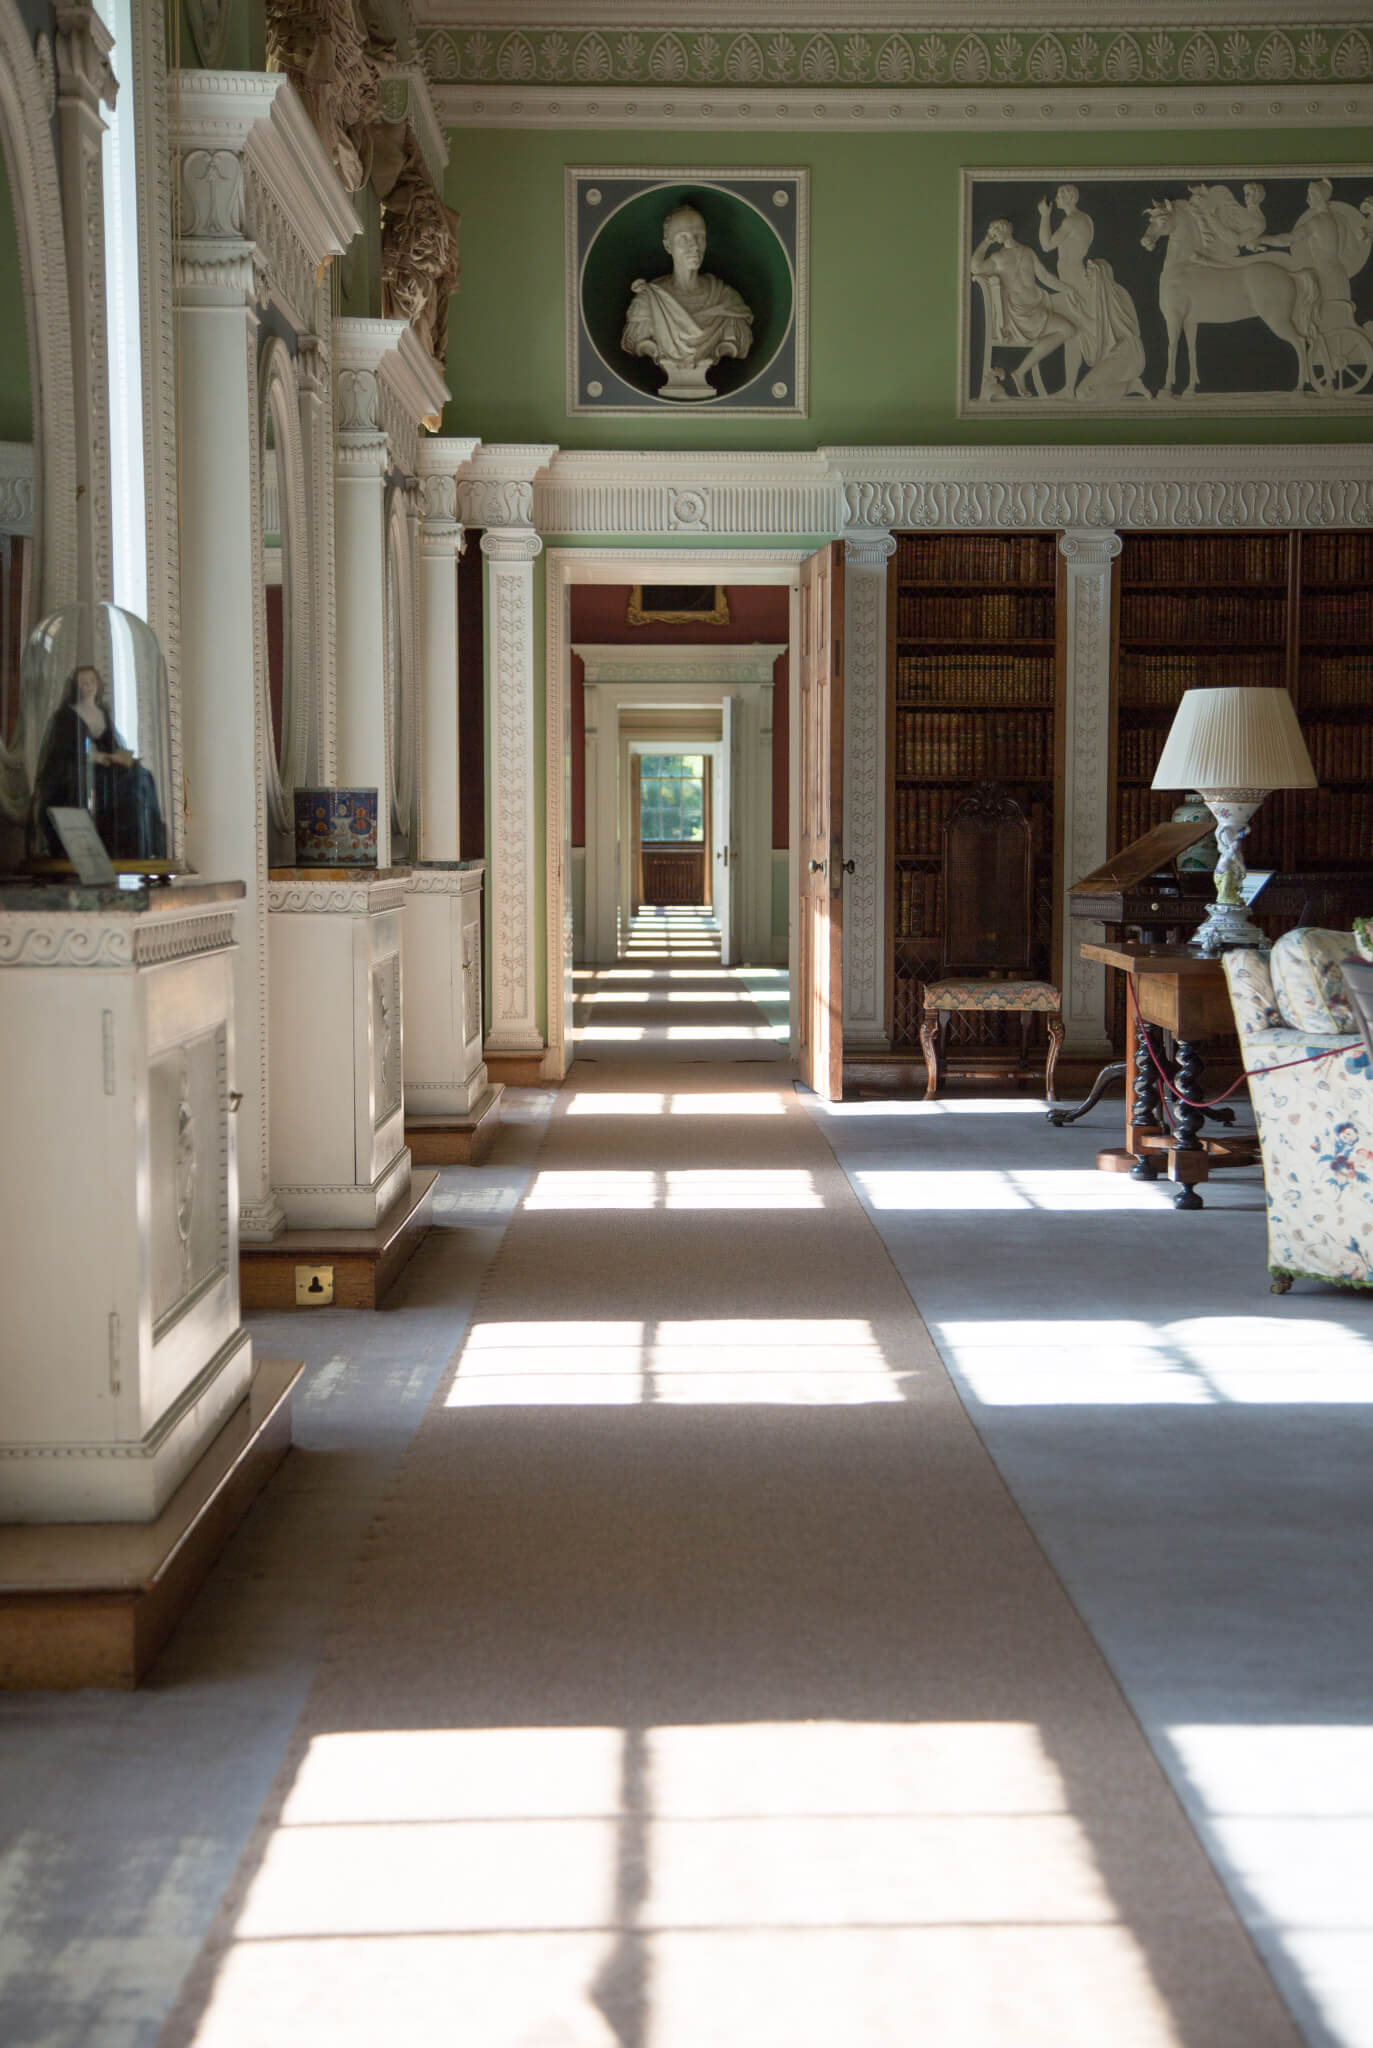 Mellerstain House and Gardens Interior.jpg